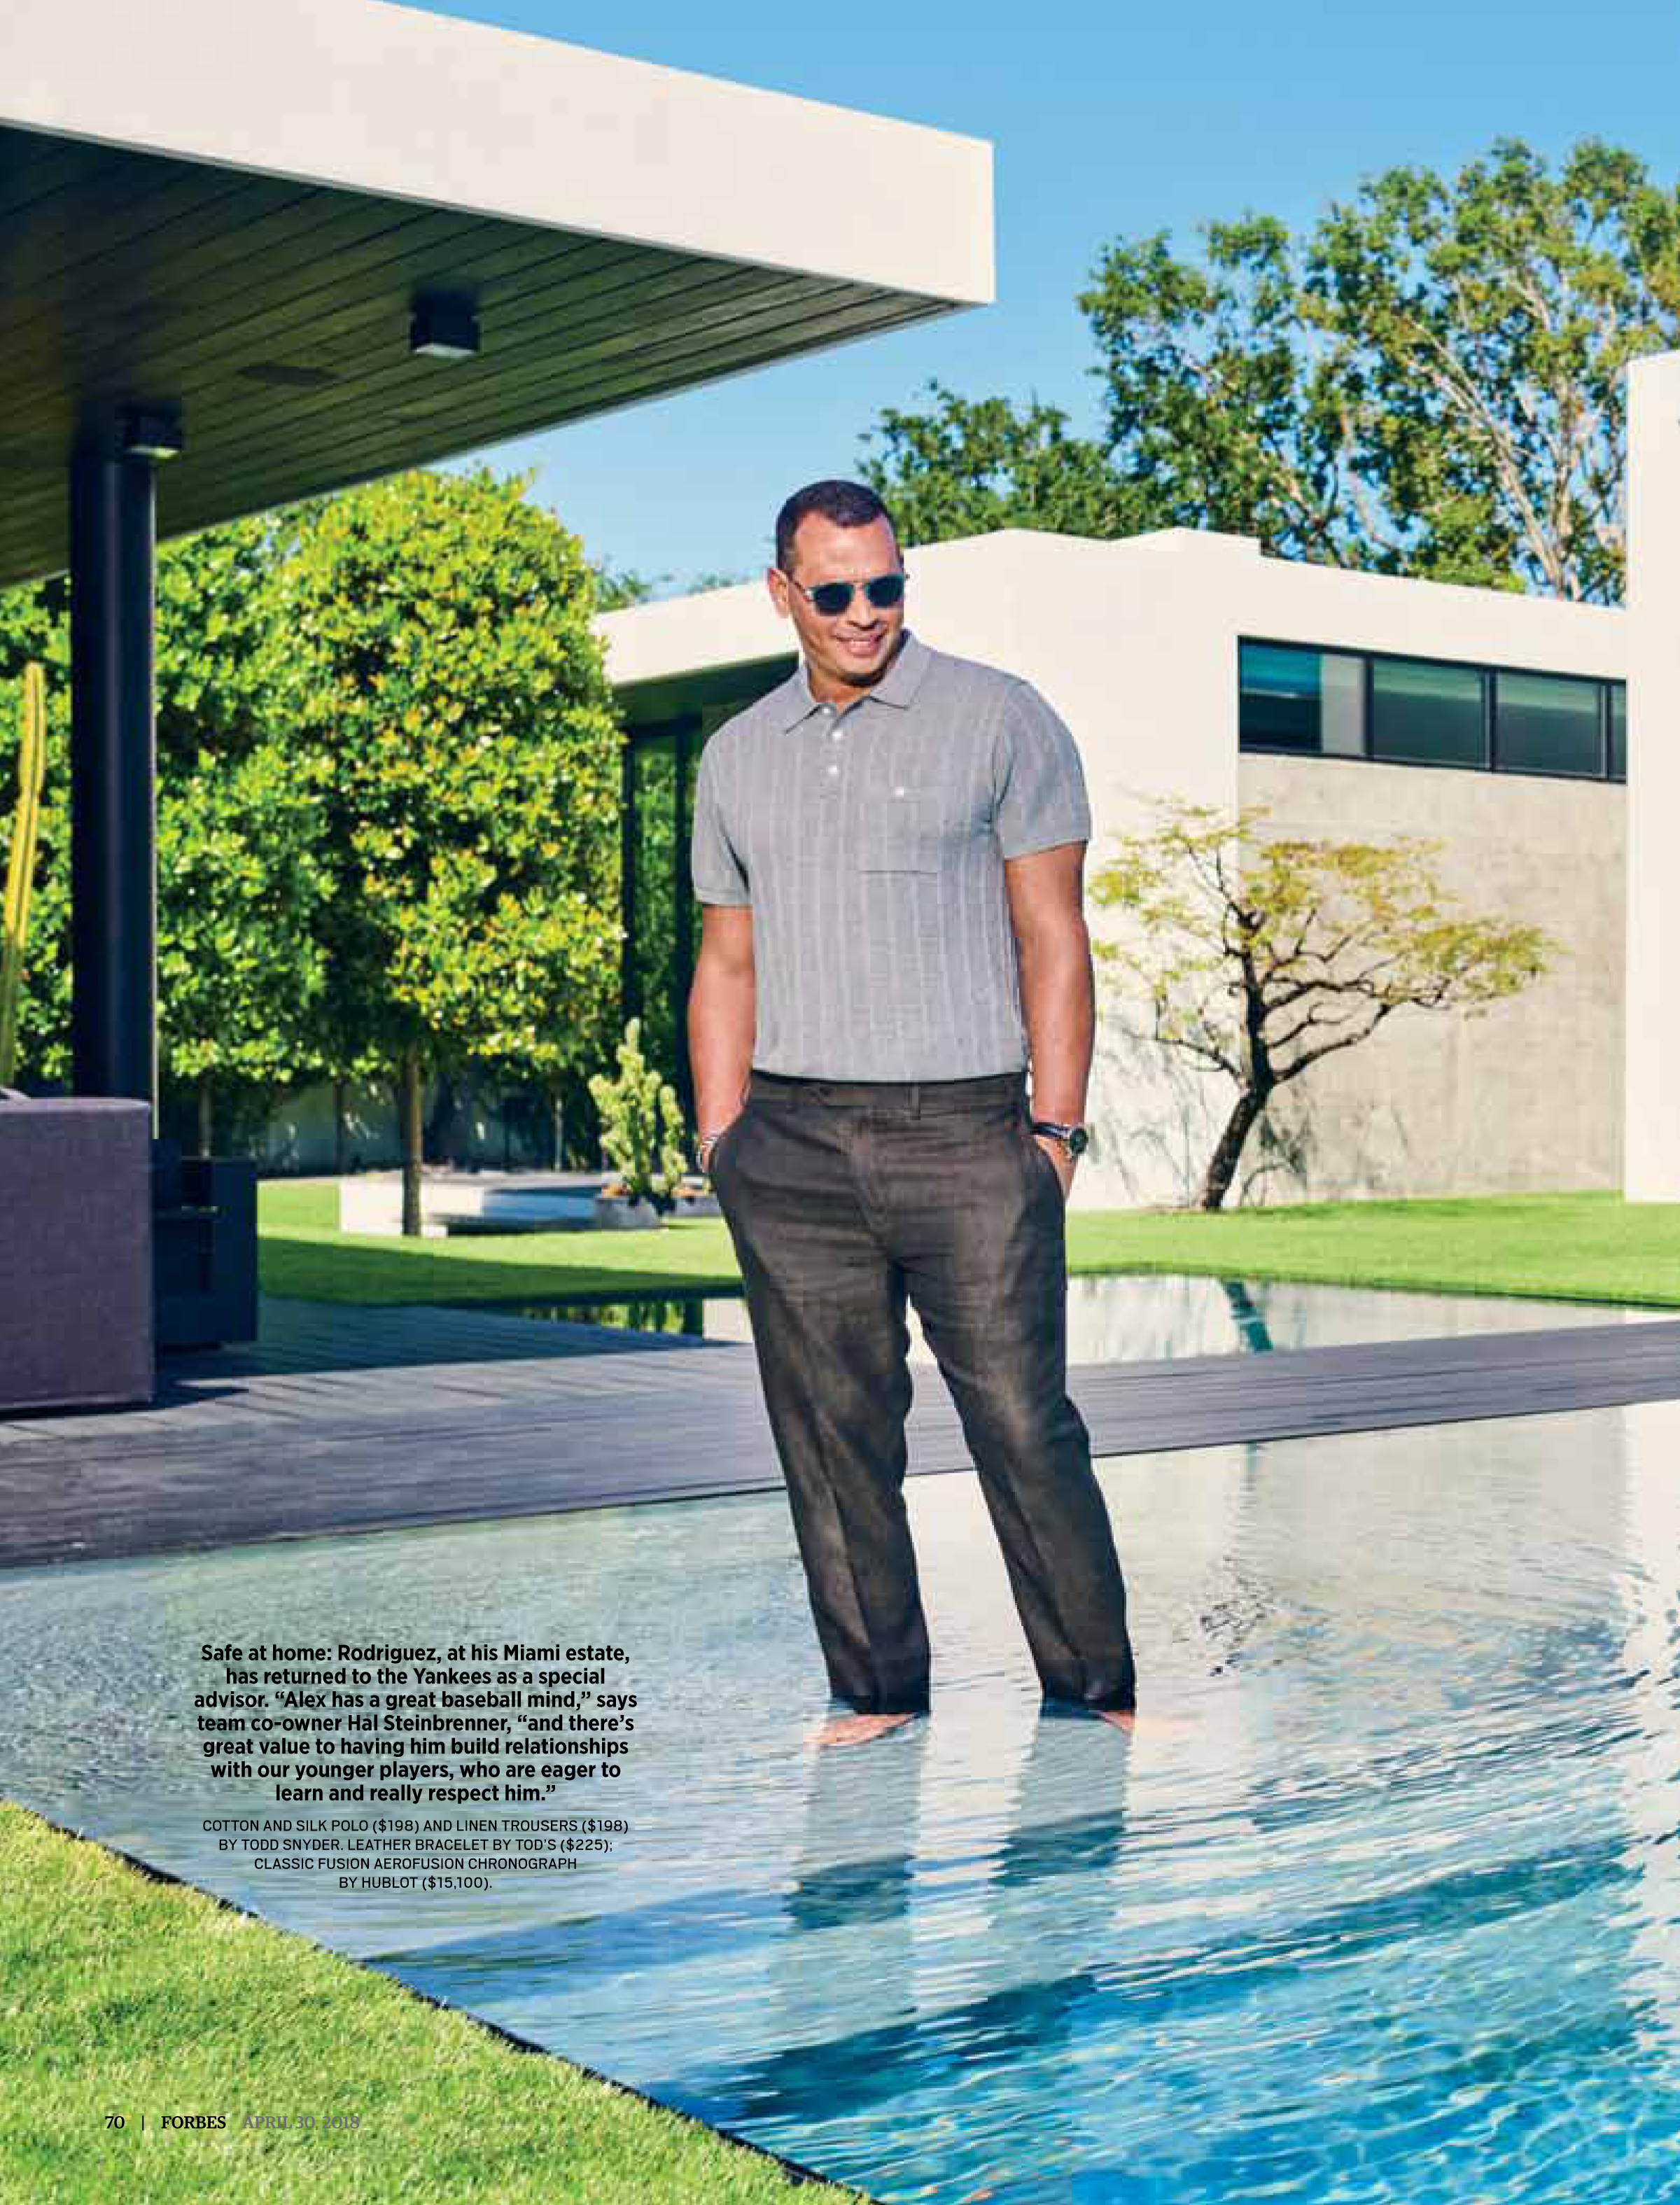 A-Rod In Paradise